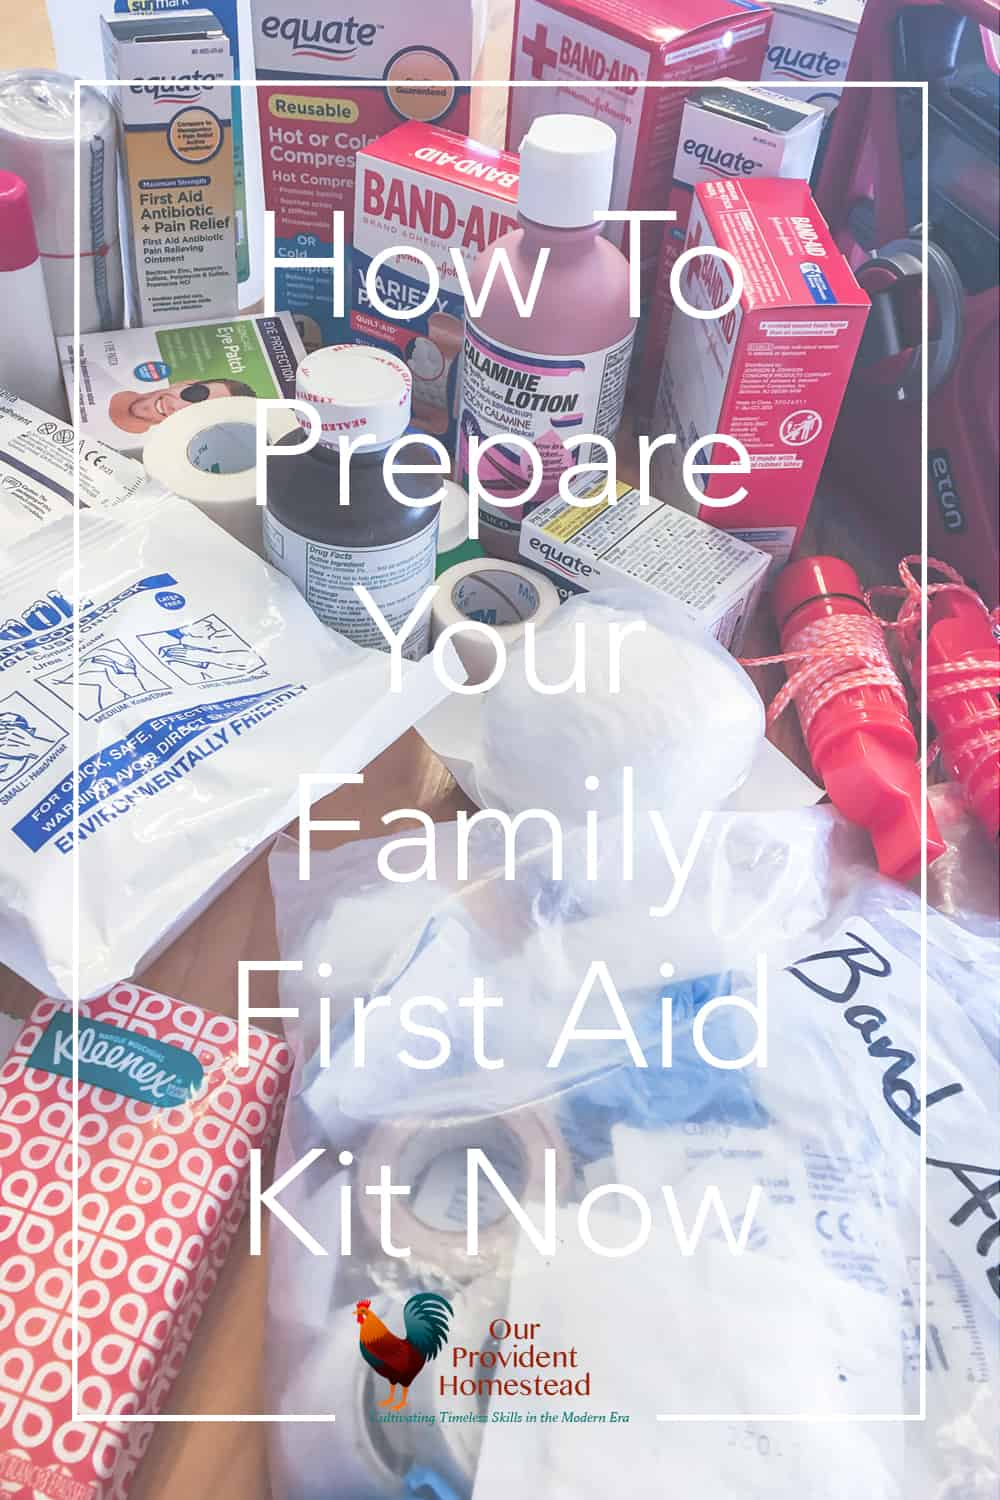 Do you have a family first aid kit? We go over why you should have one and what kinds of things you should keep in it for everyday and emergencies. #emergencypreparedness #firstaidkit #survivaltips